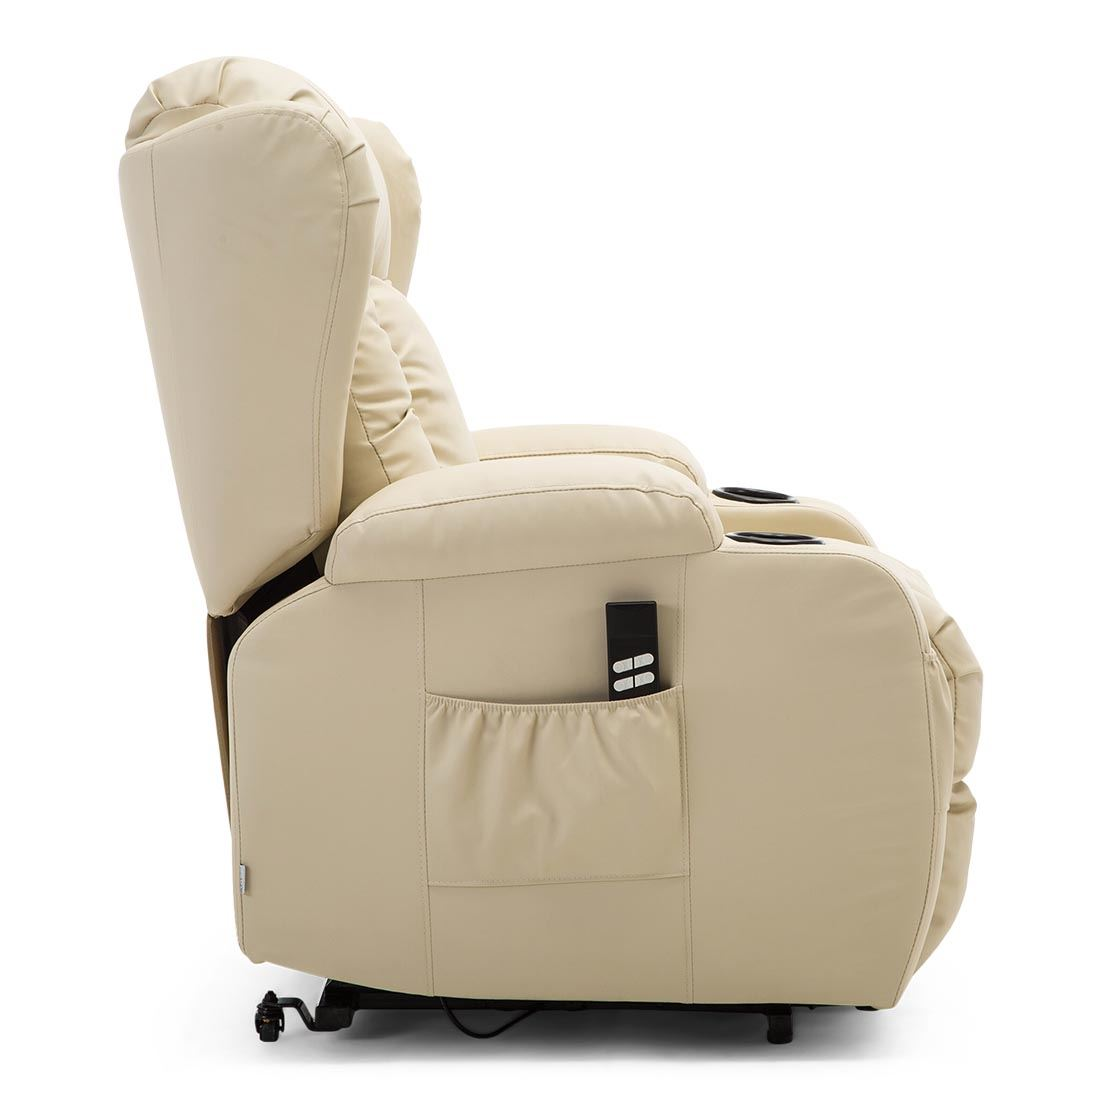 CAESAR-DUAL-MOTOR-RISER-RECLINER-LEATHER-MOBILITY-ARMCHAIR-MASSAGE-HEATED-CHAIR thumbnail 21